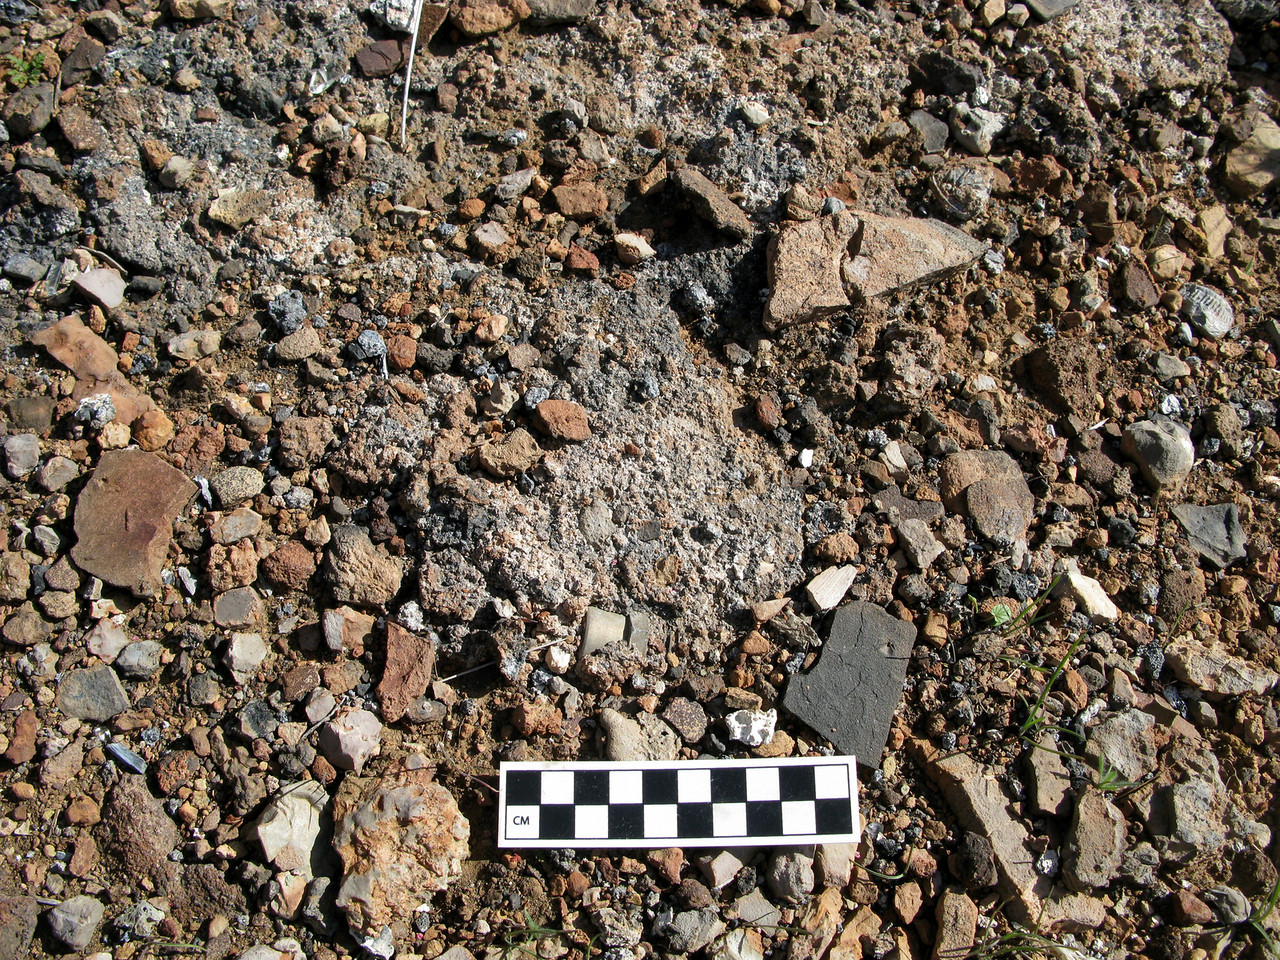 Some evidence of molten aluminum and fire cracked rock was located at the impact site's burn area.